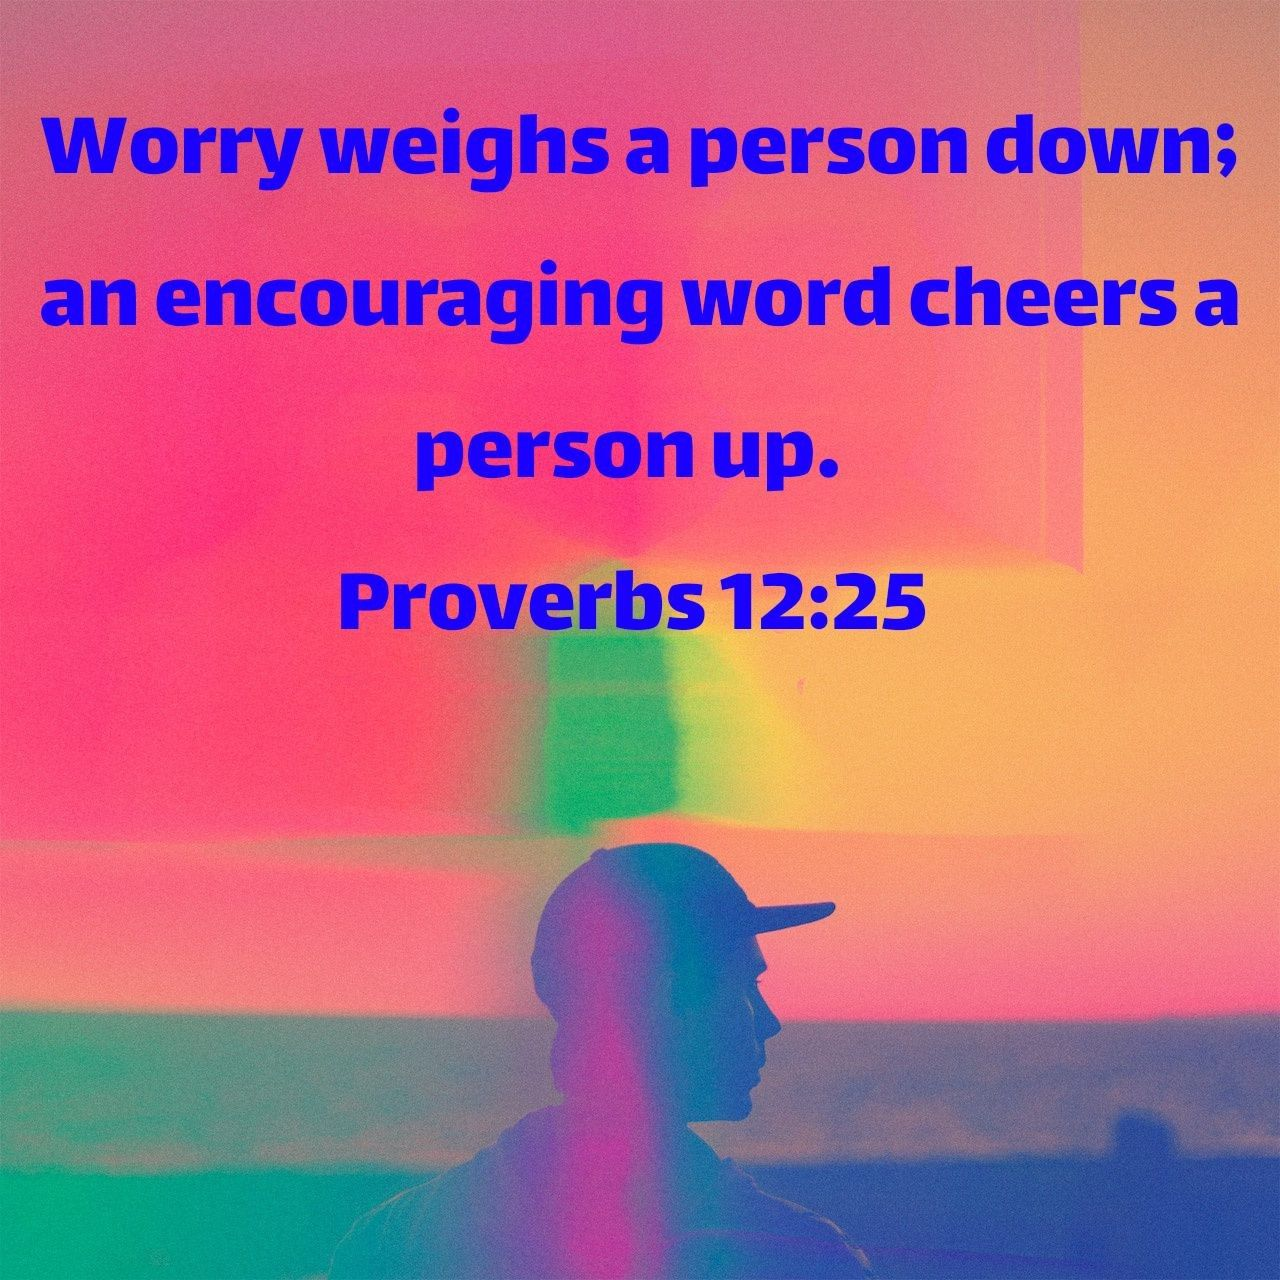 Pin By Howard Huddle On Christian Memes Words Of Encouragement Christian Memes Words